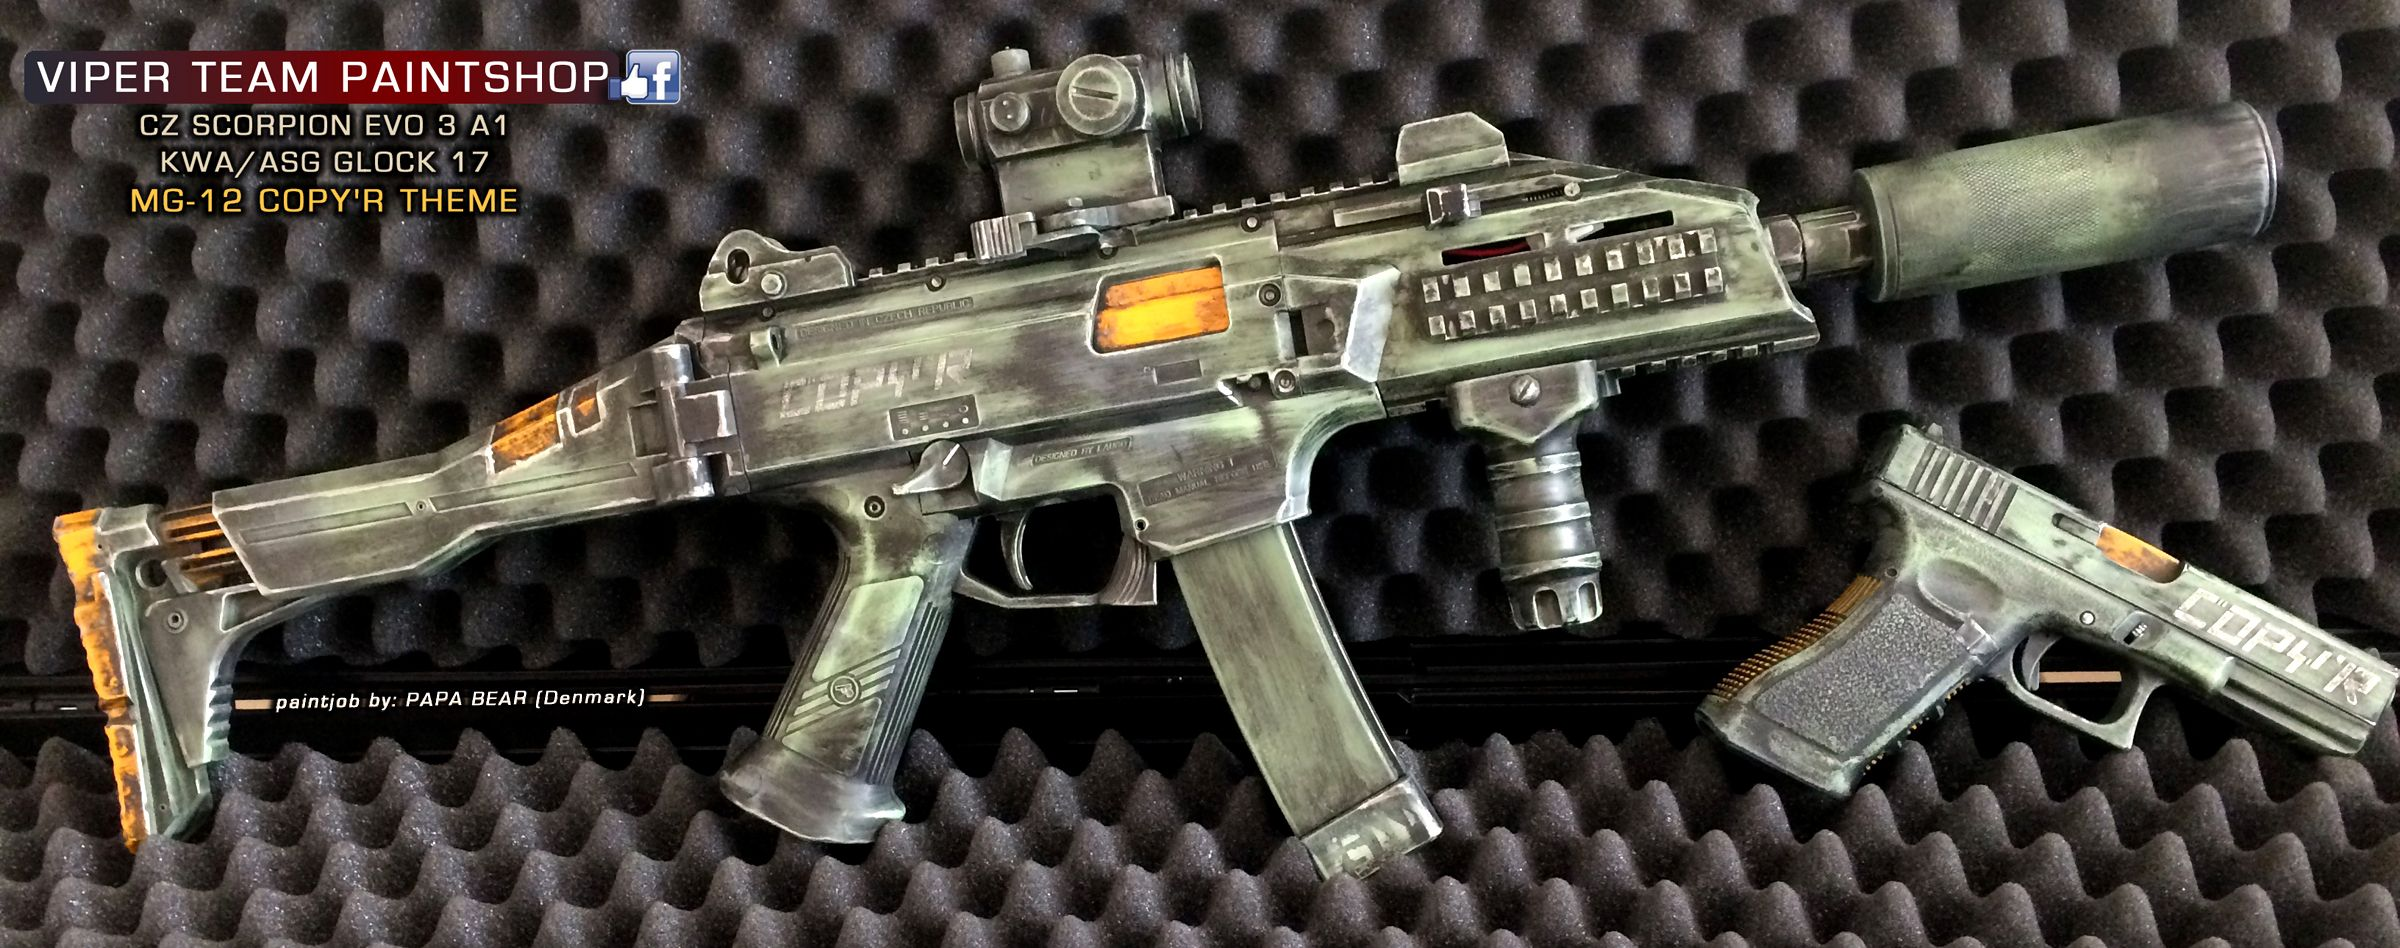 Airsoft Guns Danmark paintjob from papa bear (viper team paintshop) in denmark .. check